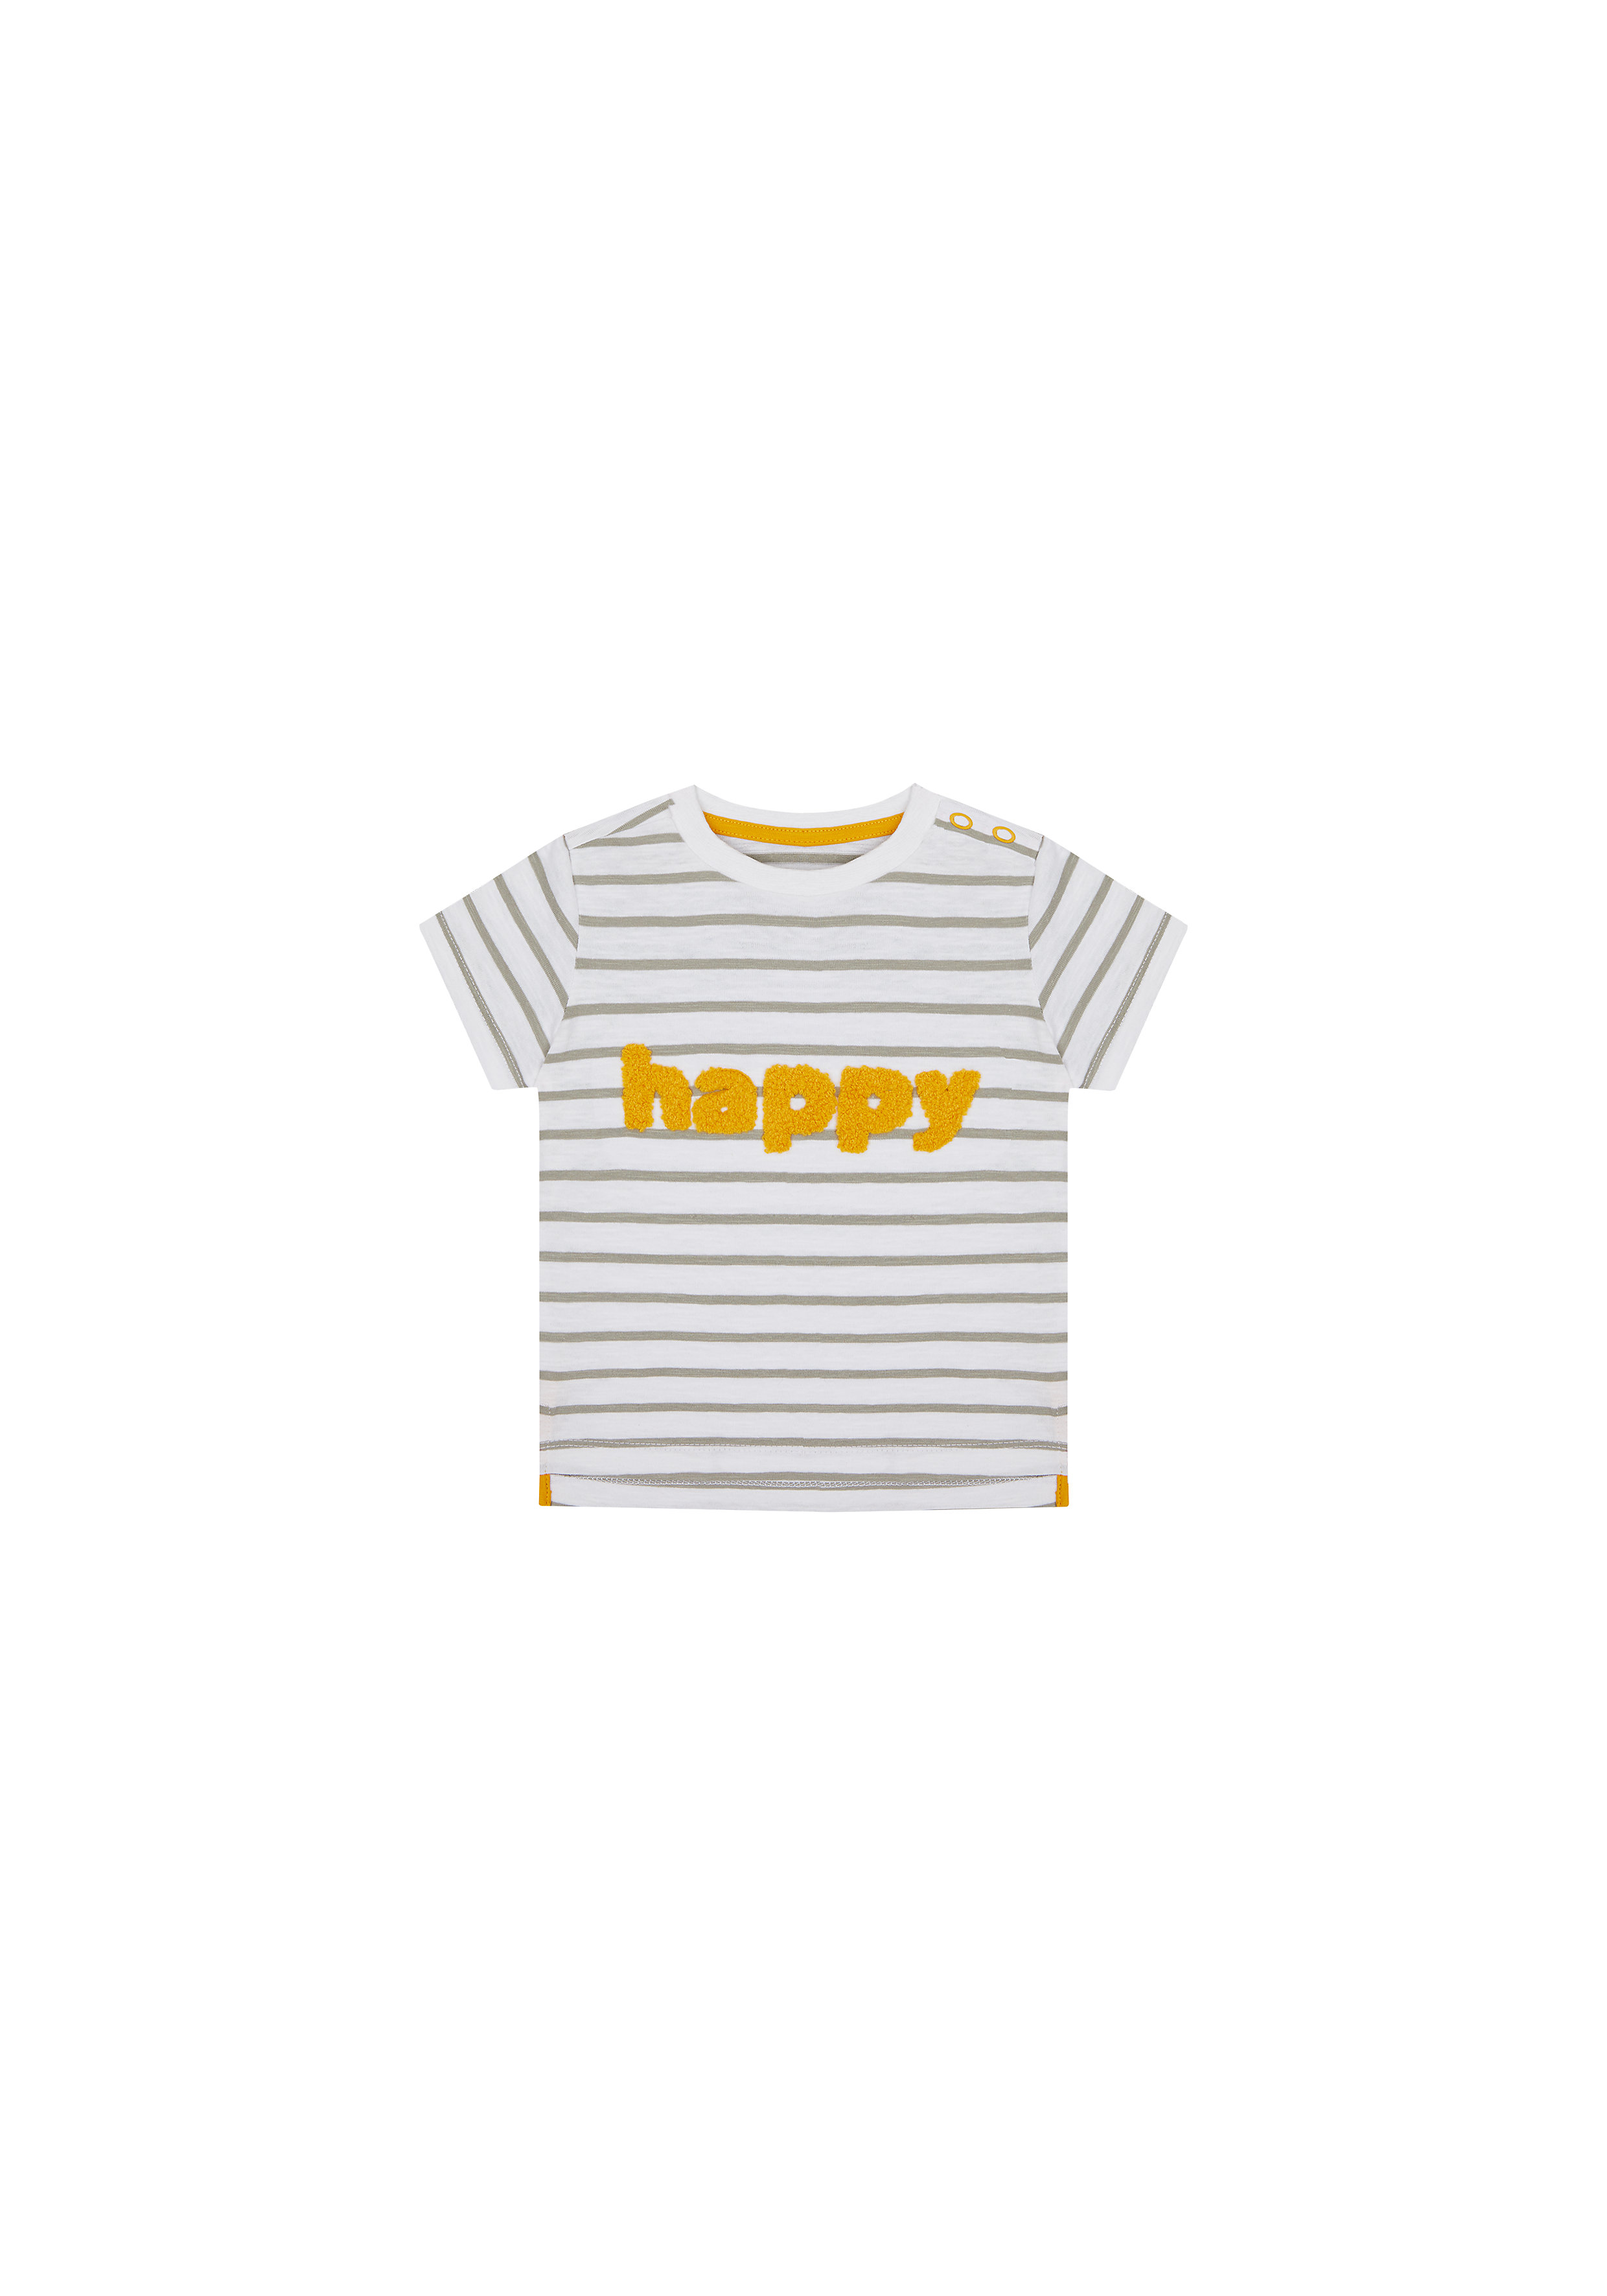 Mothercare   Boys Half Sleeves T-Shirt Text Patchwork - White